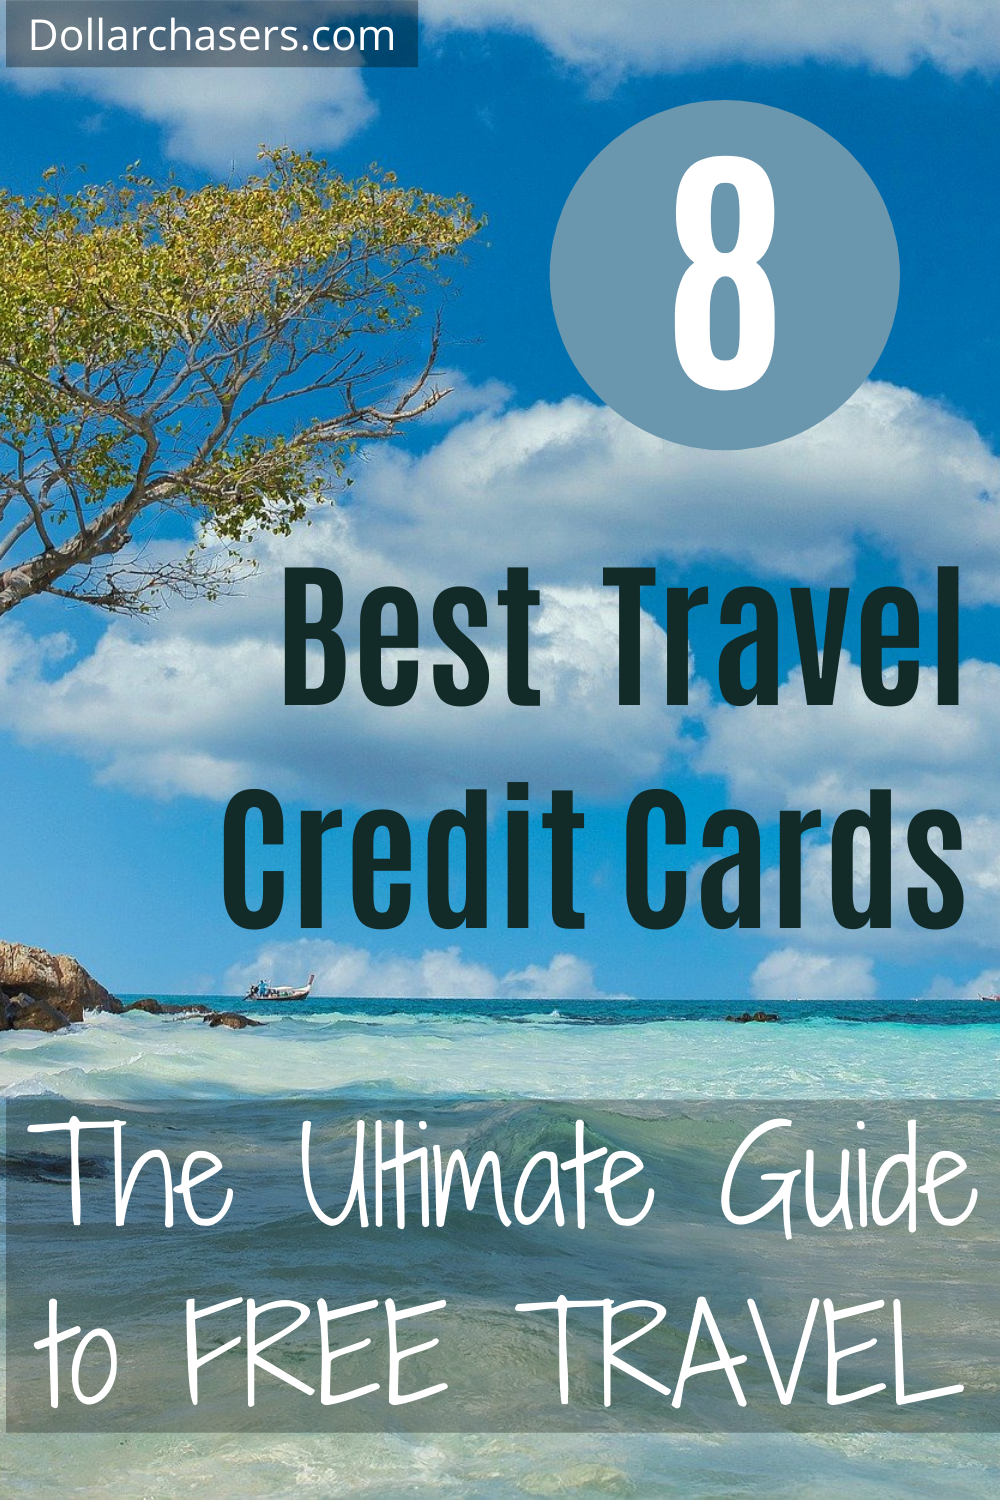 This guide is more than a list of the best travel credit cards. It outlines strategies that allow you to take advantage of as much free travel as possible. It also discusses what type of person should get each card, as well as the best way to use each one. If you do not use these credit cards properly, you will be leaving a lot of money on the table. #creditcards #creditcardrewards #freetravel #travelhacking #personalfinance